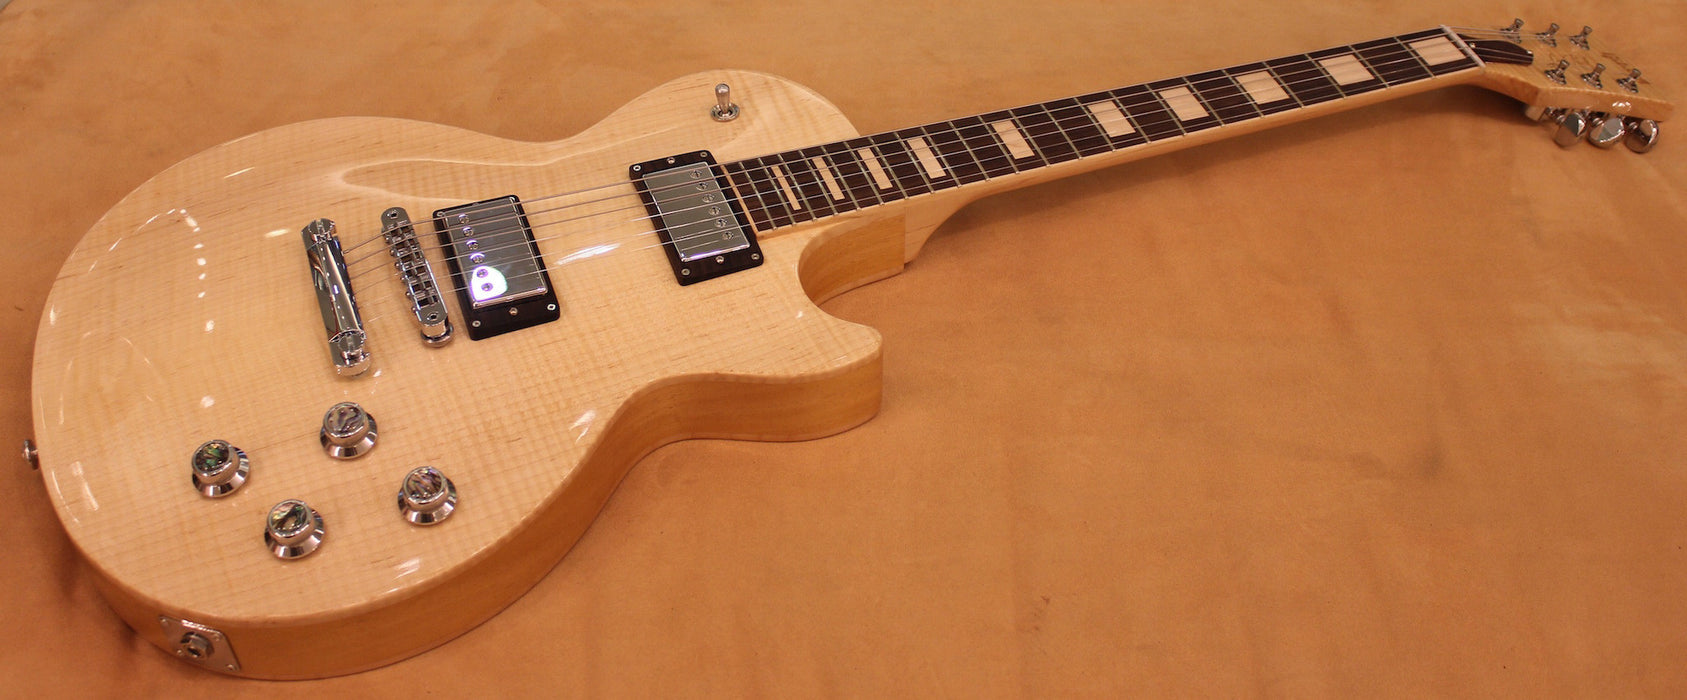 GIBSON LP All Wood Antique Natural LPTLPANCH1 - HIENDGUITAR.COM